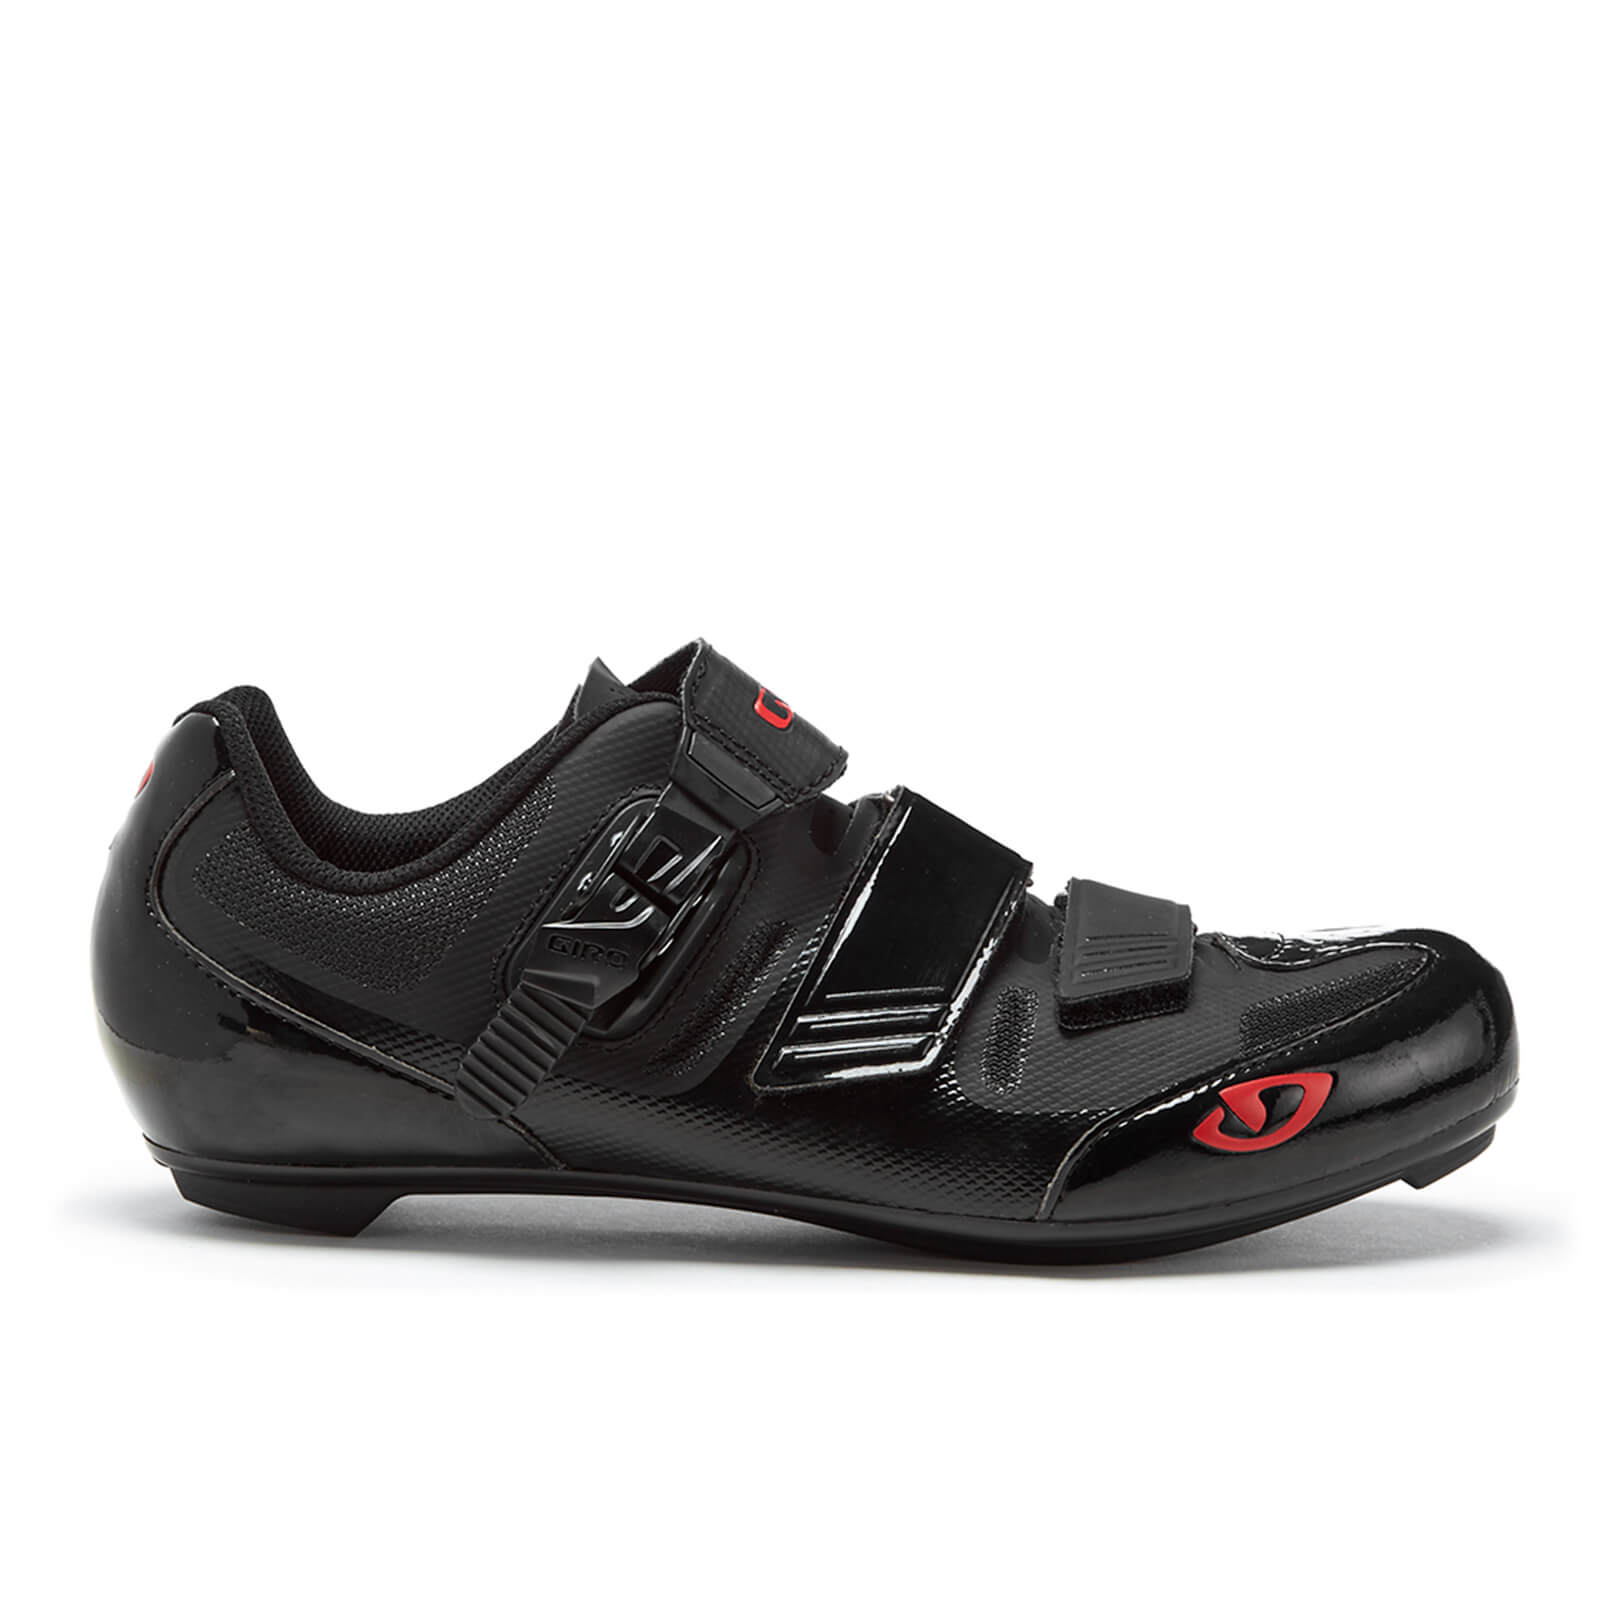 Giro Apeckx II Road Cycling Shoes - Black/Bright Red